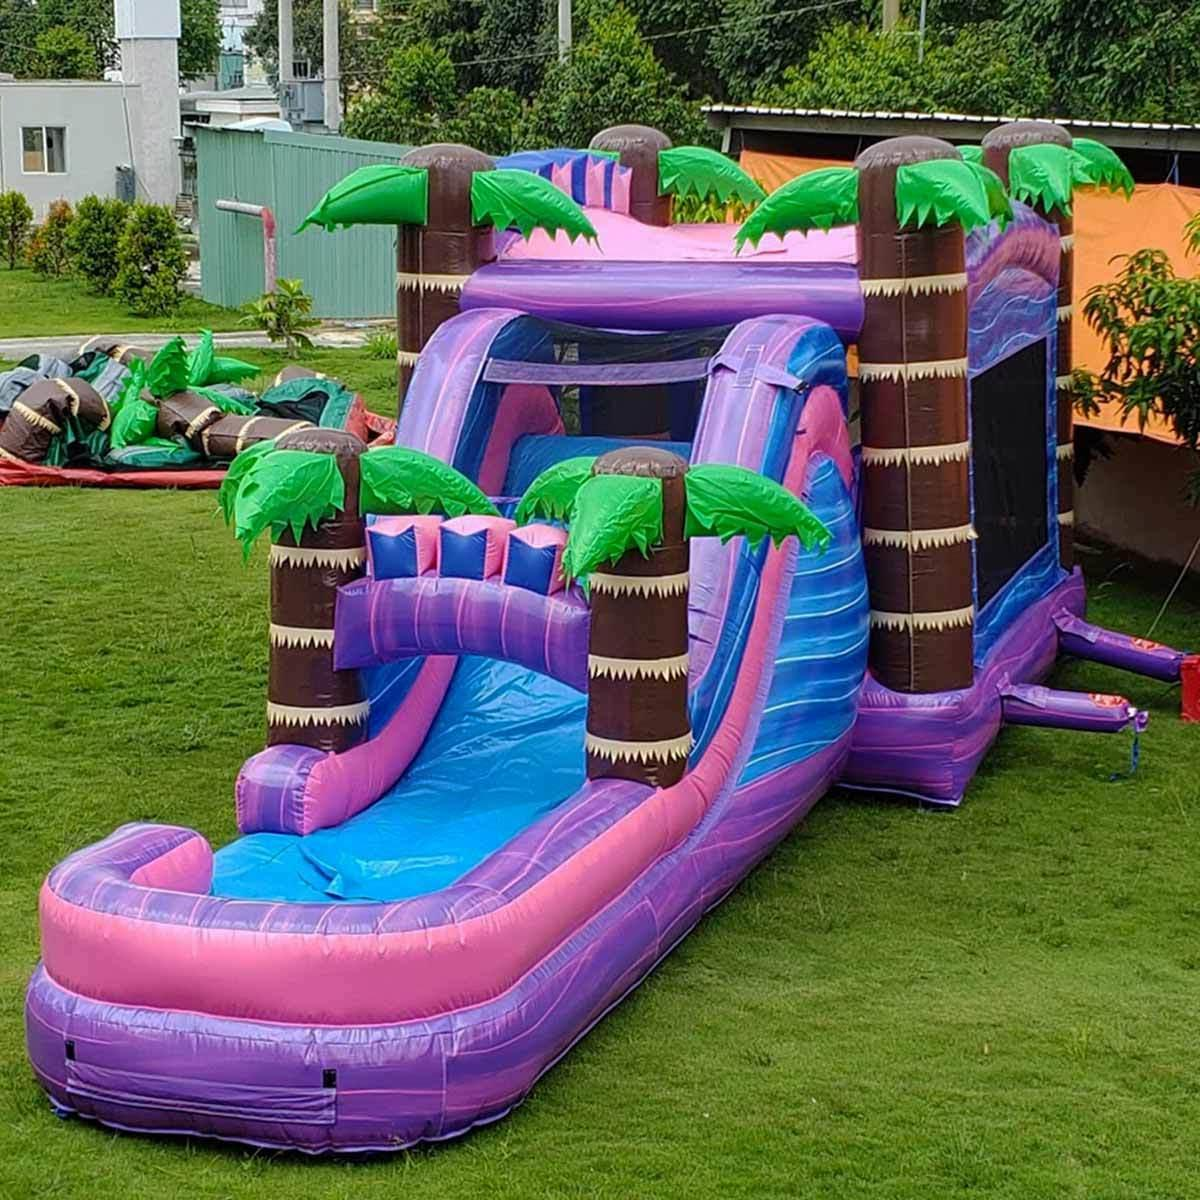 Commercial Inflatable Water Slide Wet/Dry Combo House